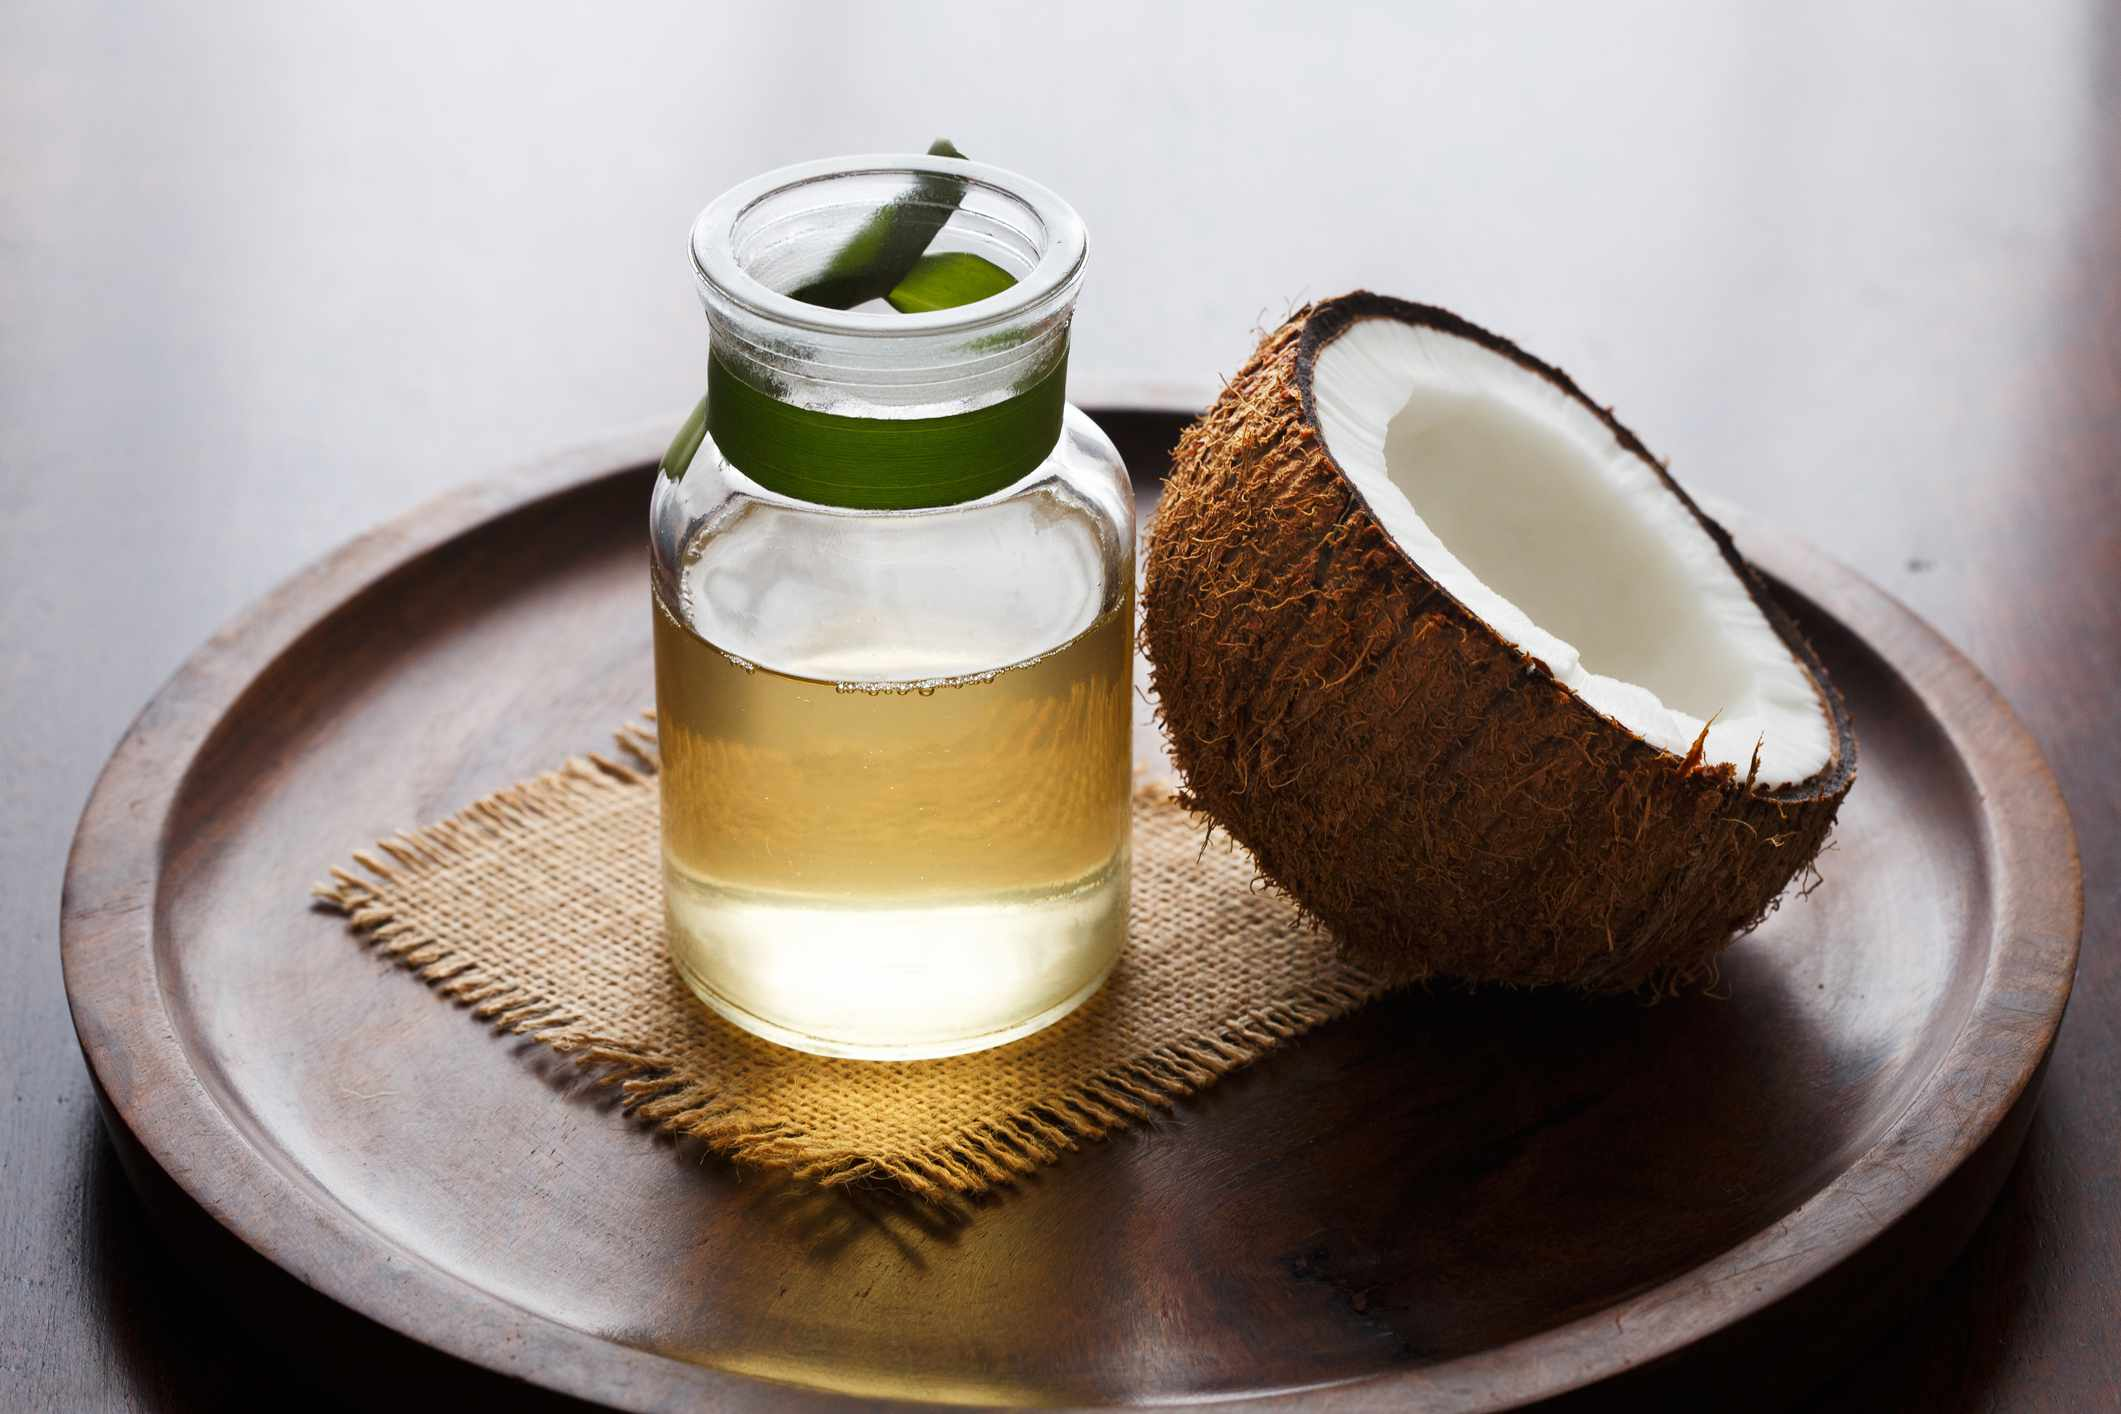 Coconut oil and a coconut half sitting on a tray